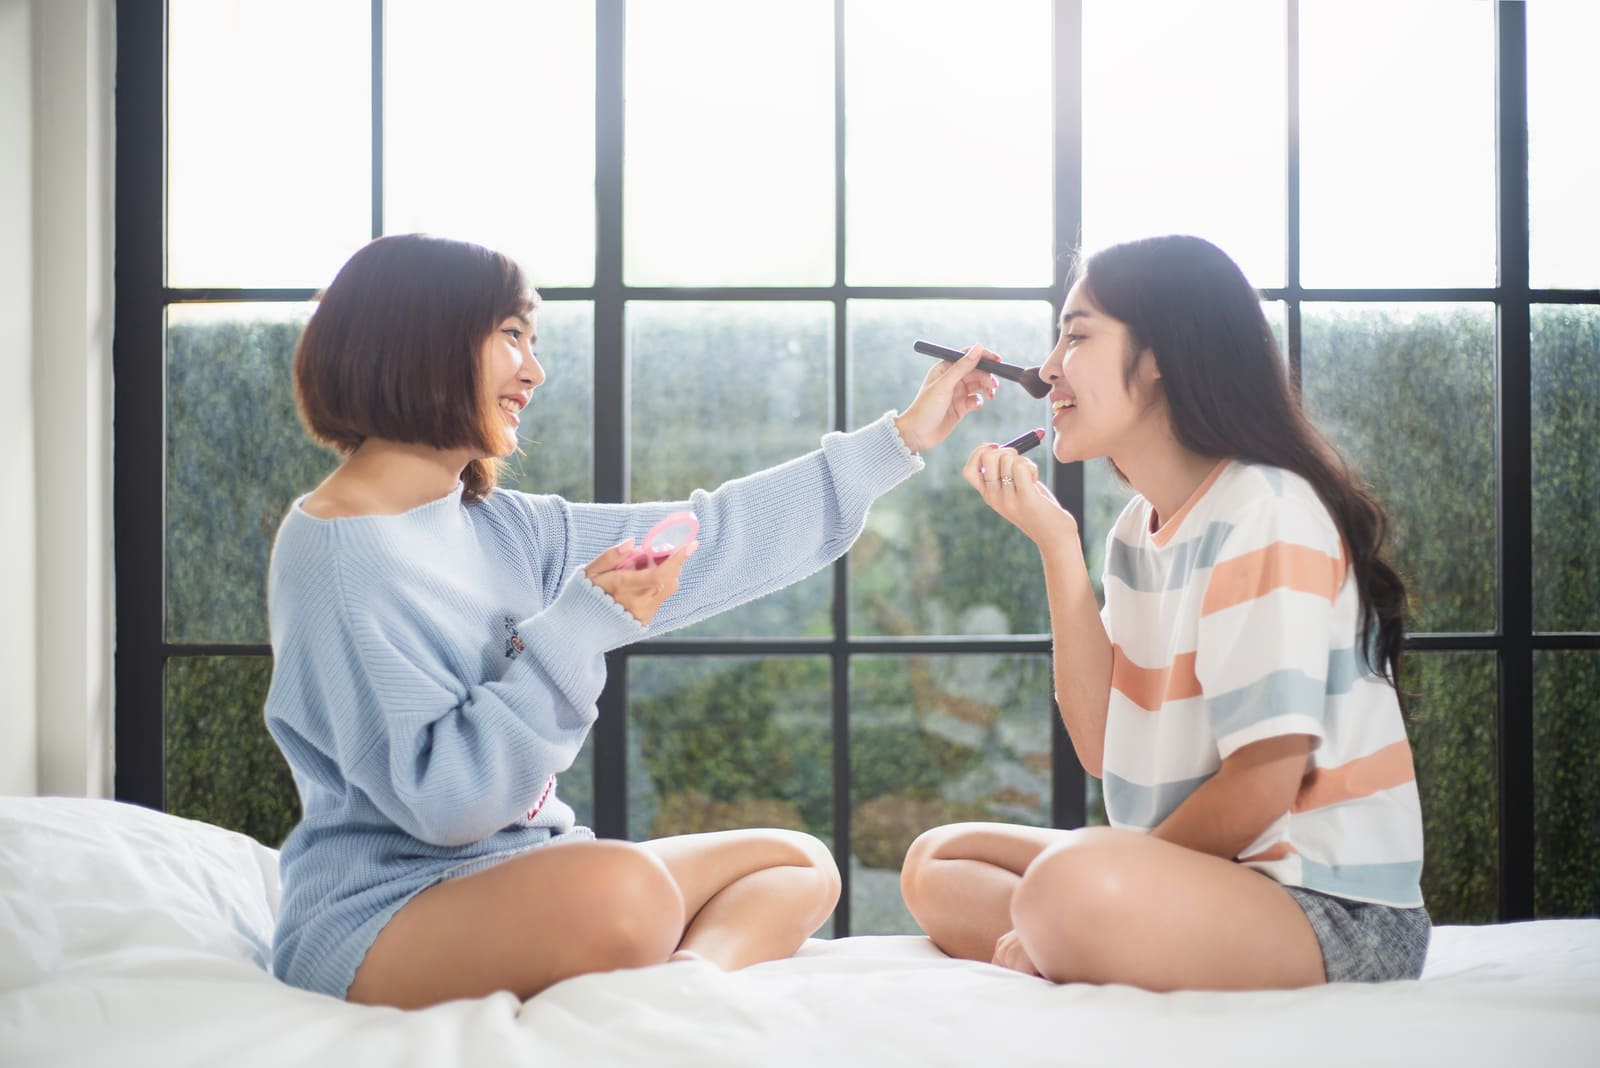 two friends sit on the bed and put on makeup